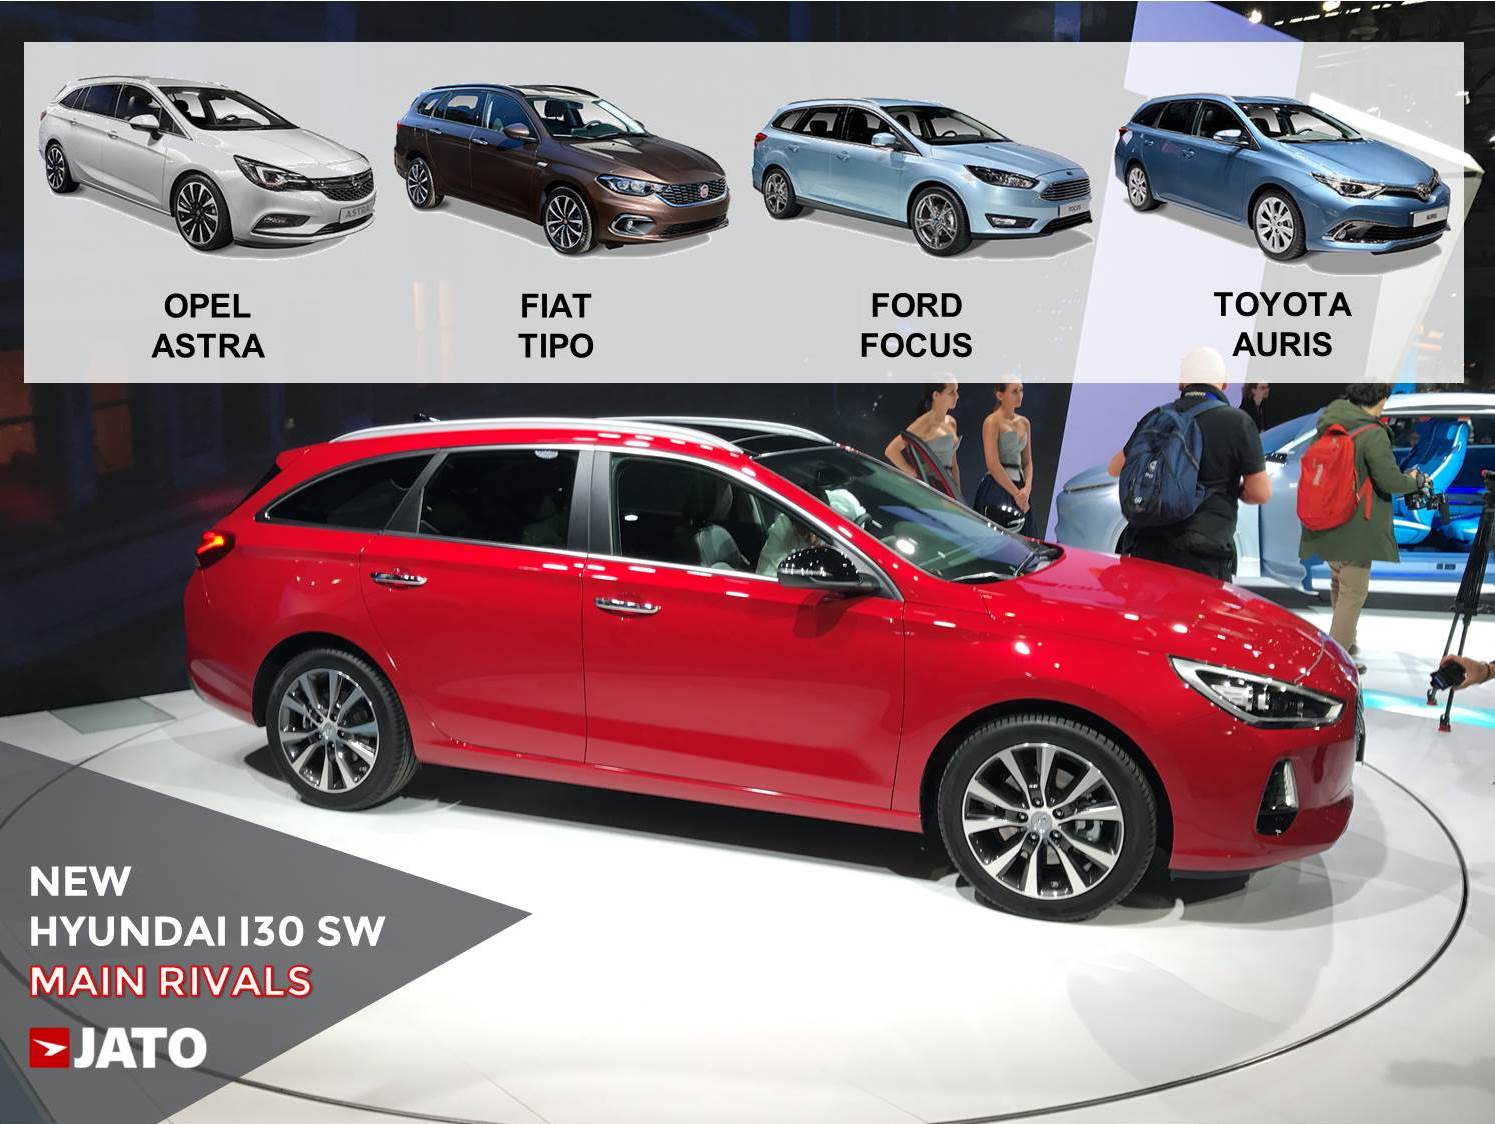 With the new generation, the i30 goes upscale in the segment. The SW version aims to compete with the Astra Tourer, Tipo SW, Focus SW, Auris SW and Kia Cee'd SW.